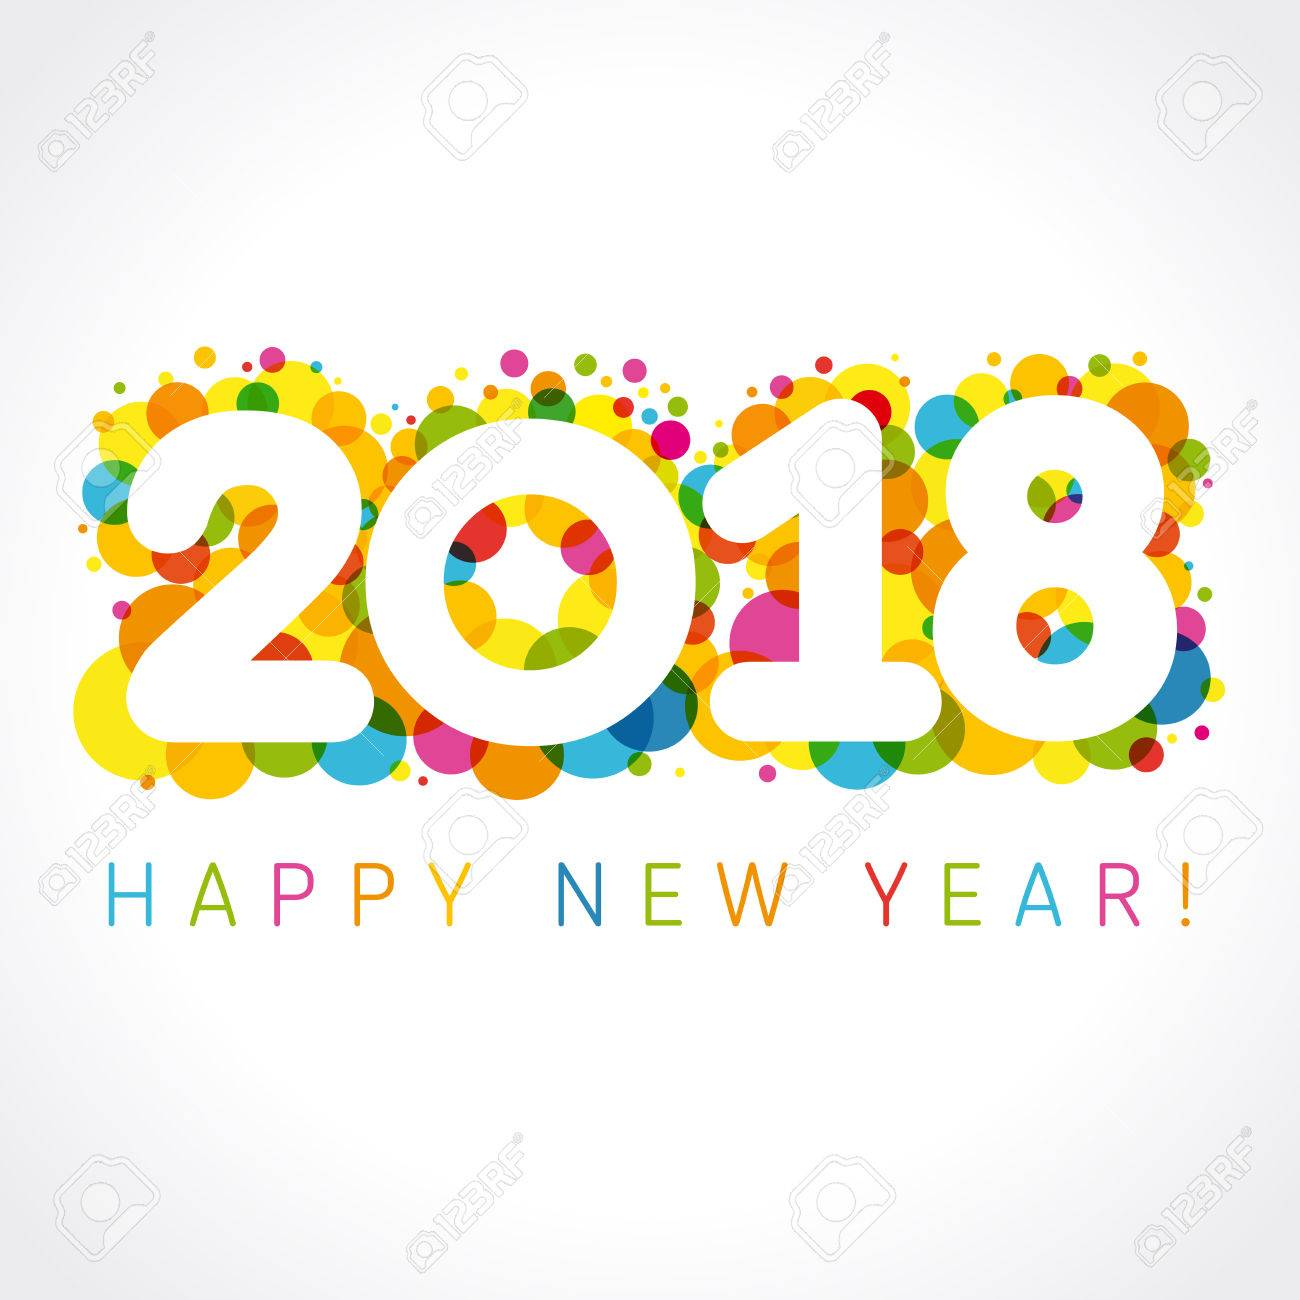 2018 happy new year colorul numbers happy holidays card with vector figures 2018 on colored